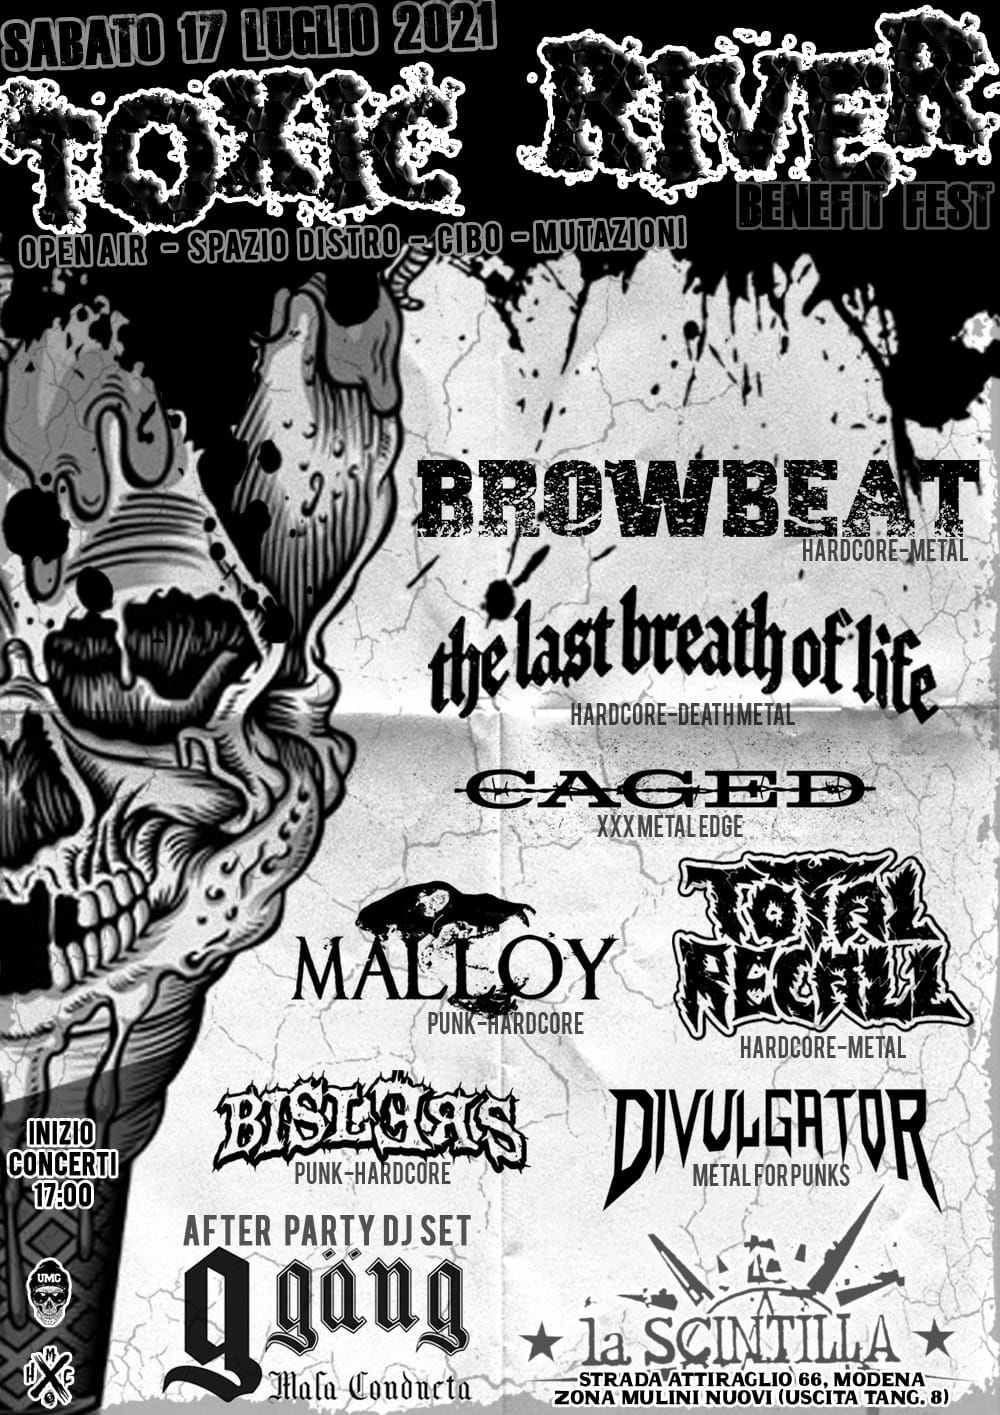 TOXIC RIVER benefit fest w/ browbeat, the last breat of life, Caged, Malloy, Total recall, Bislers, Divulgator . After party by G-gang